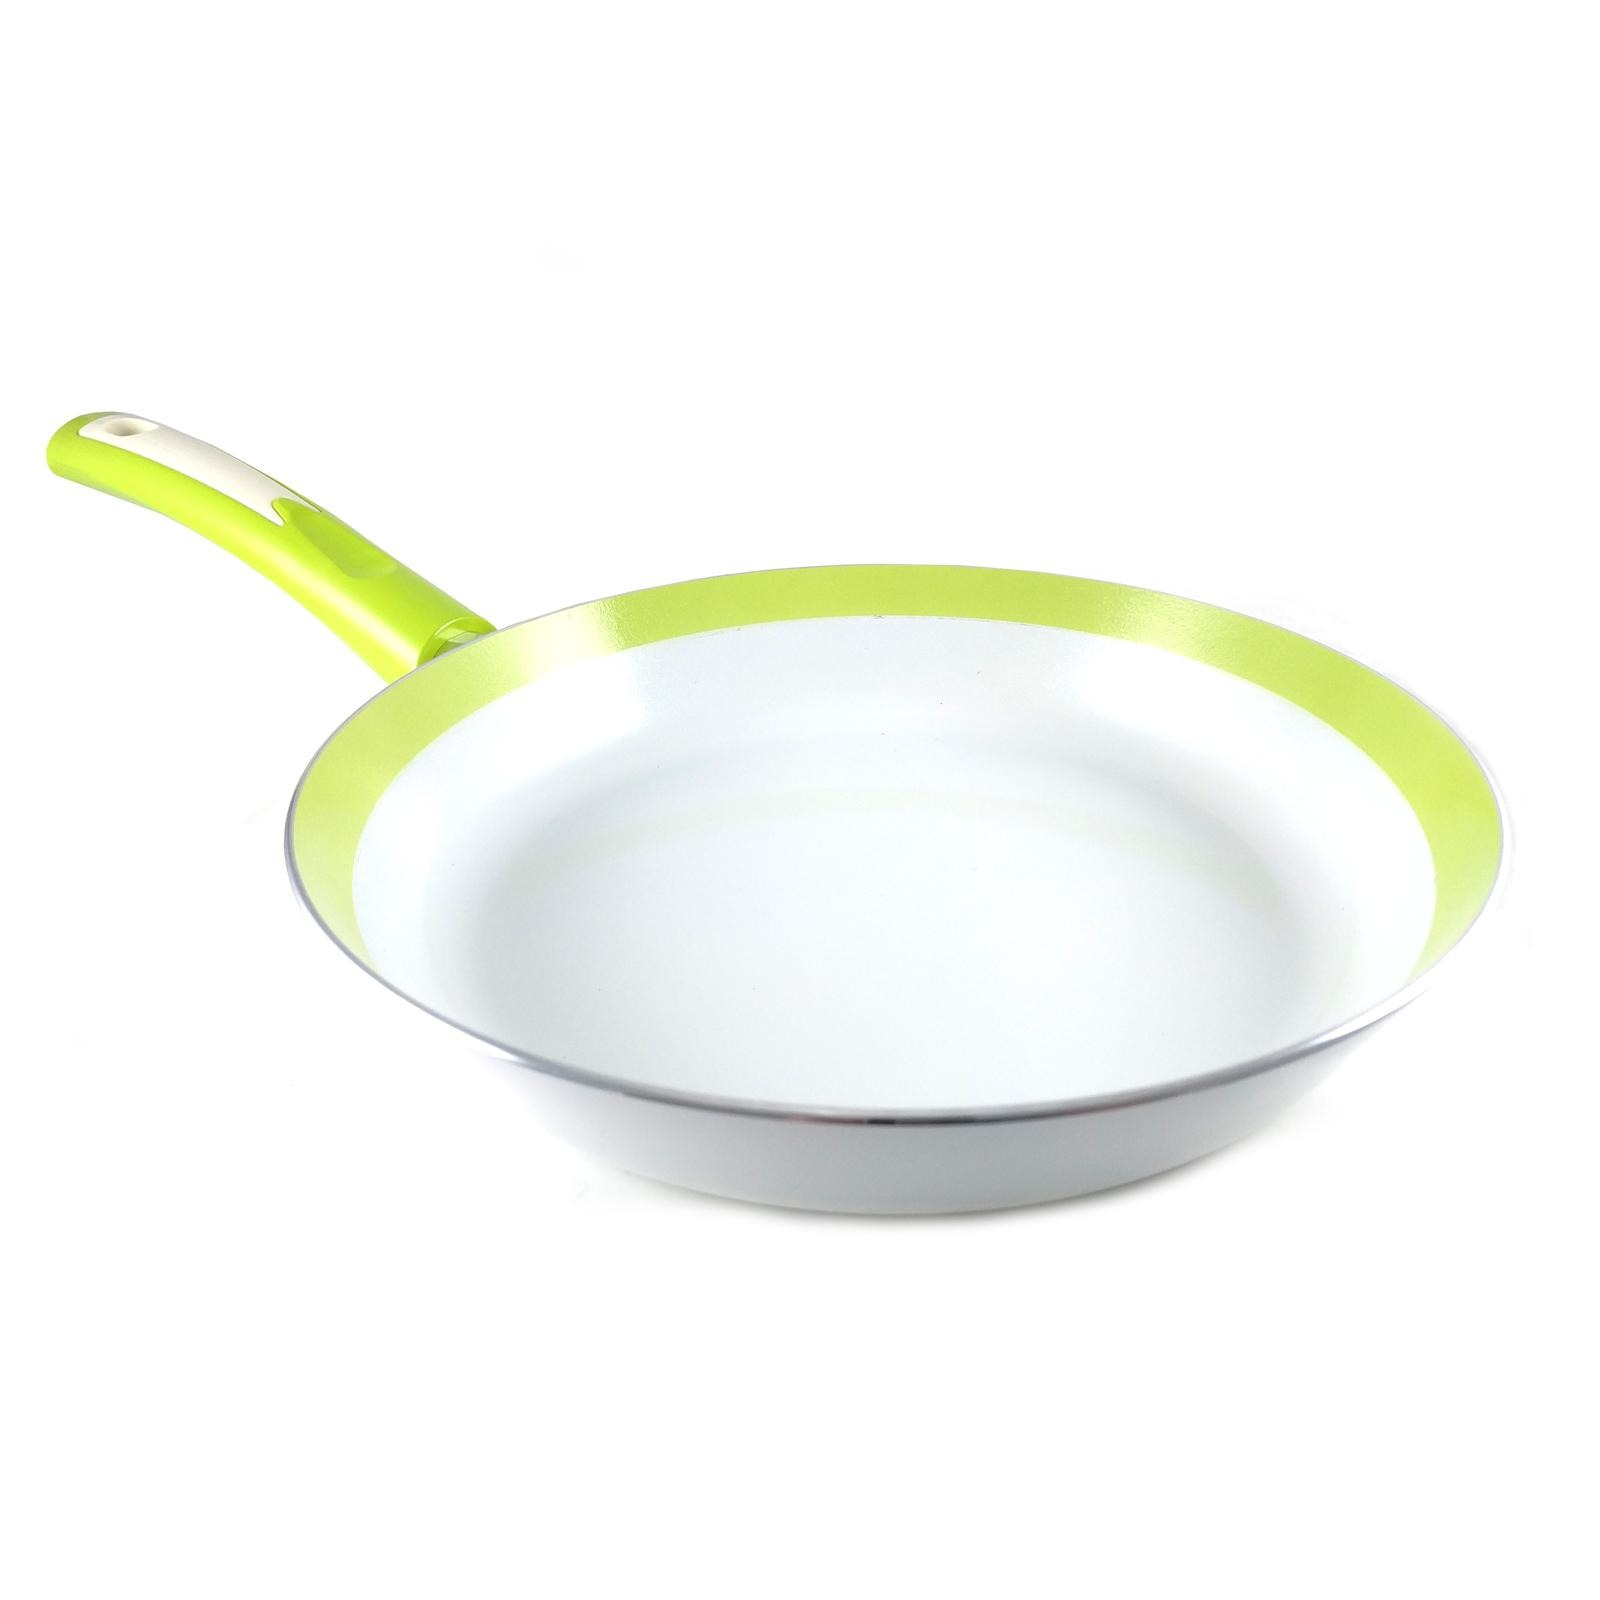 Amark Chef Delight Colours Non-Stick Ceramic Frying Pan